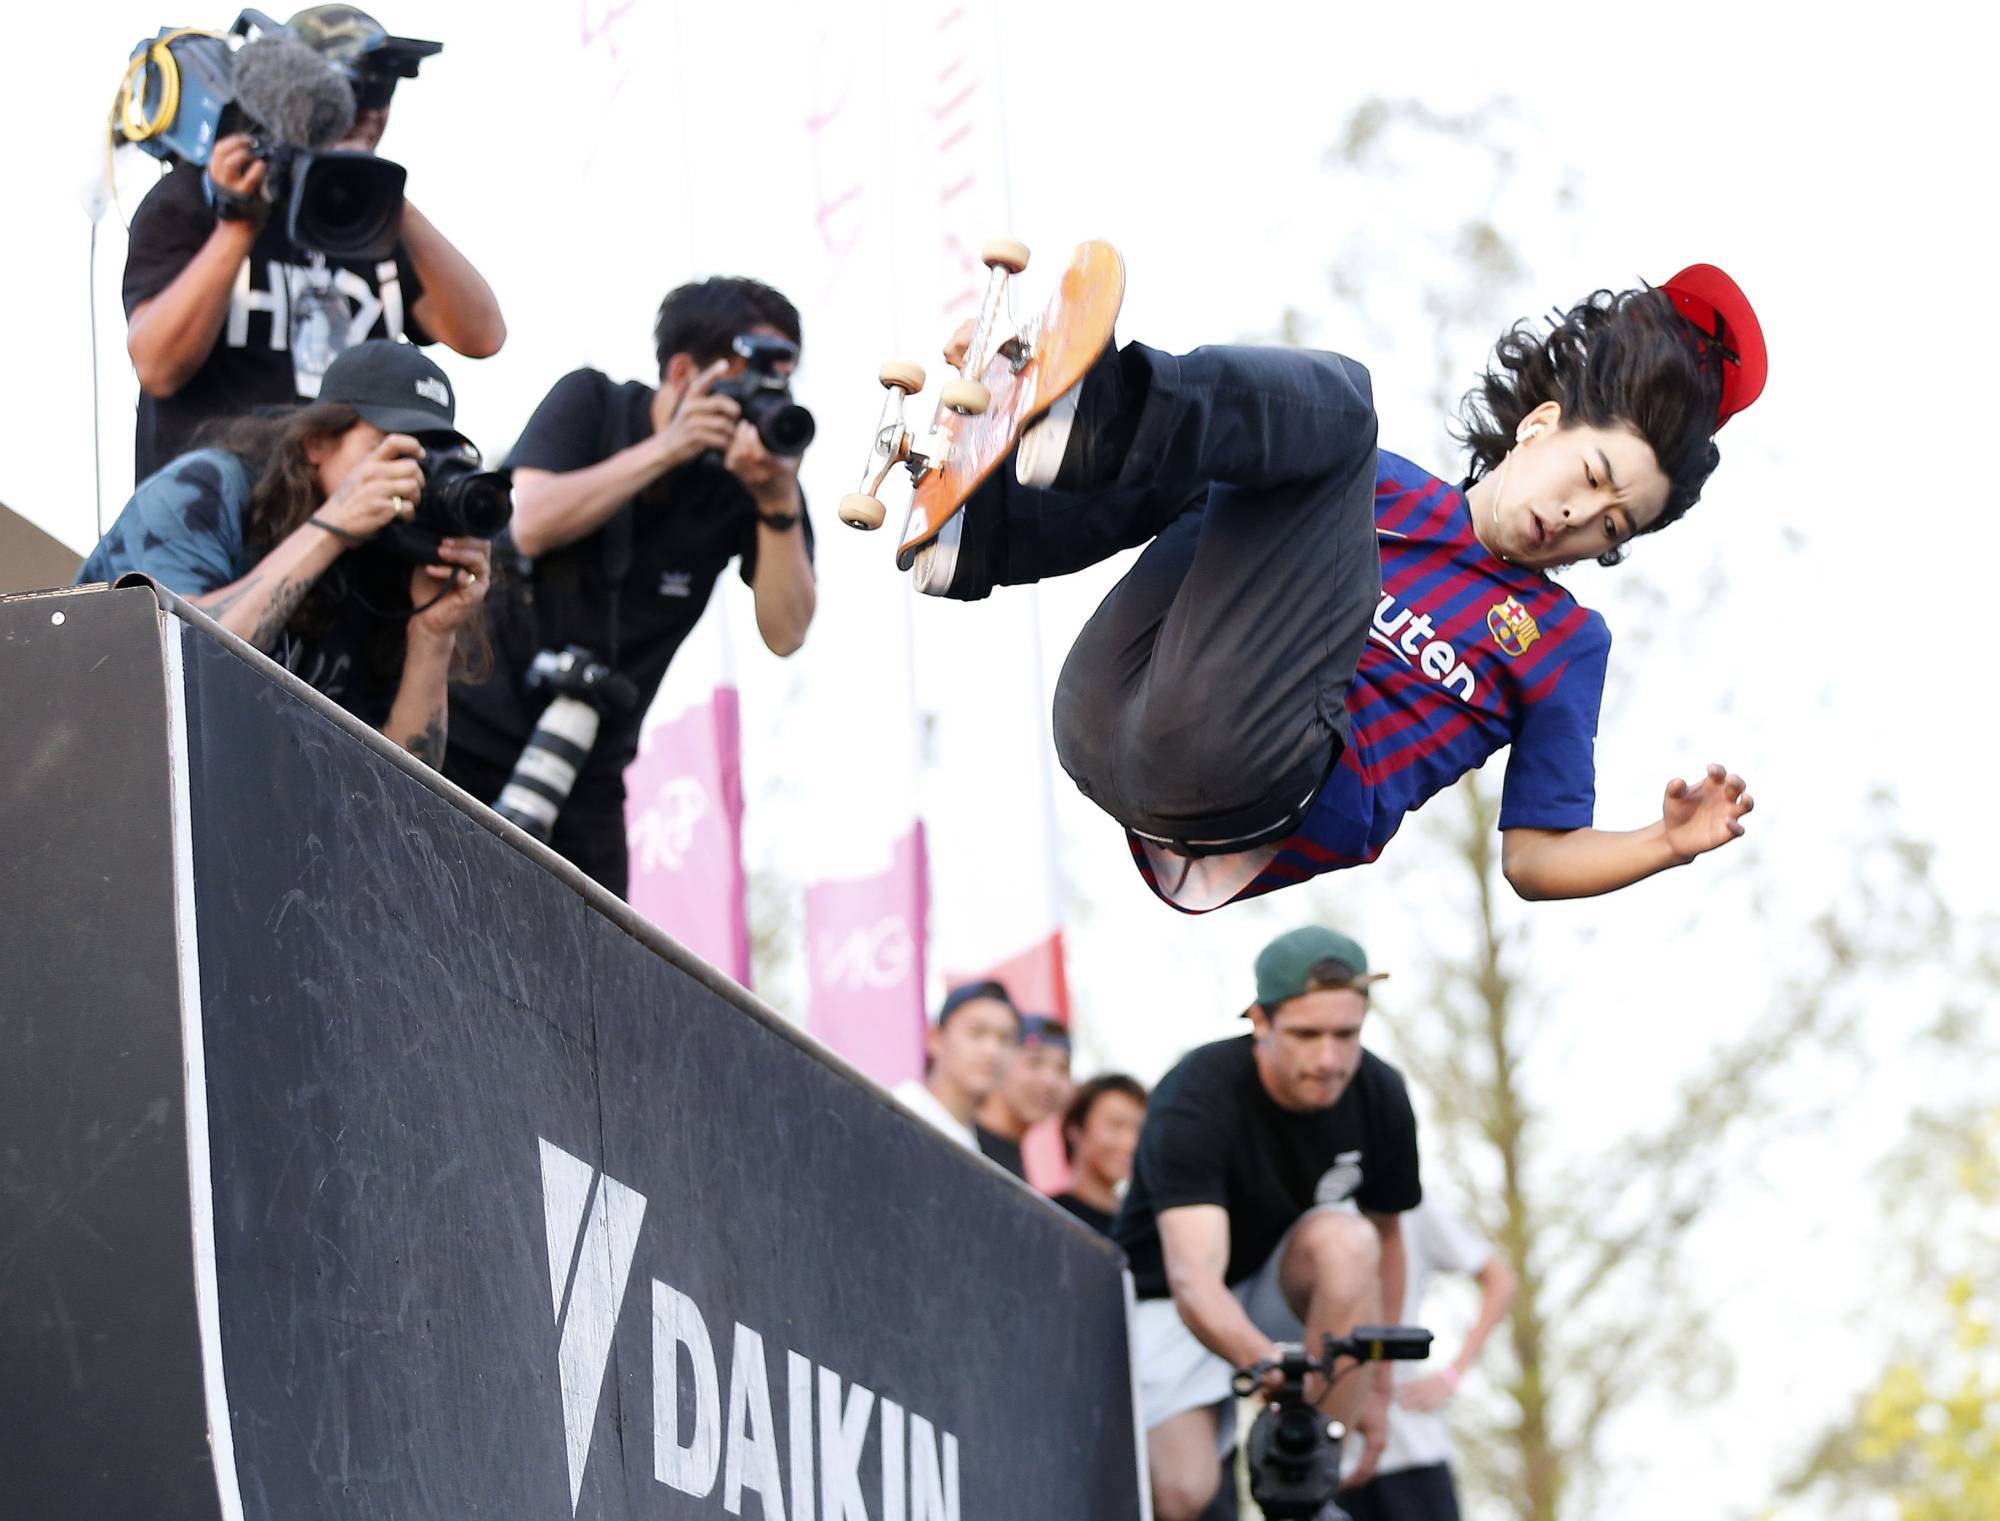 Daisuke Ikeda competes during the skateboarding competition at FISE Hiroshima 2019 in Hiroshima last April. | KYODO